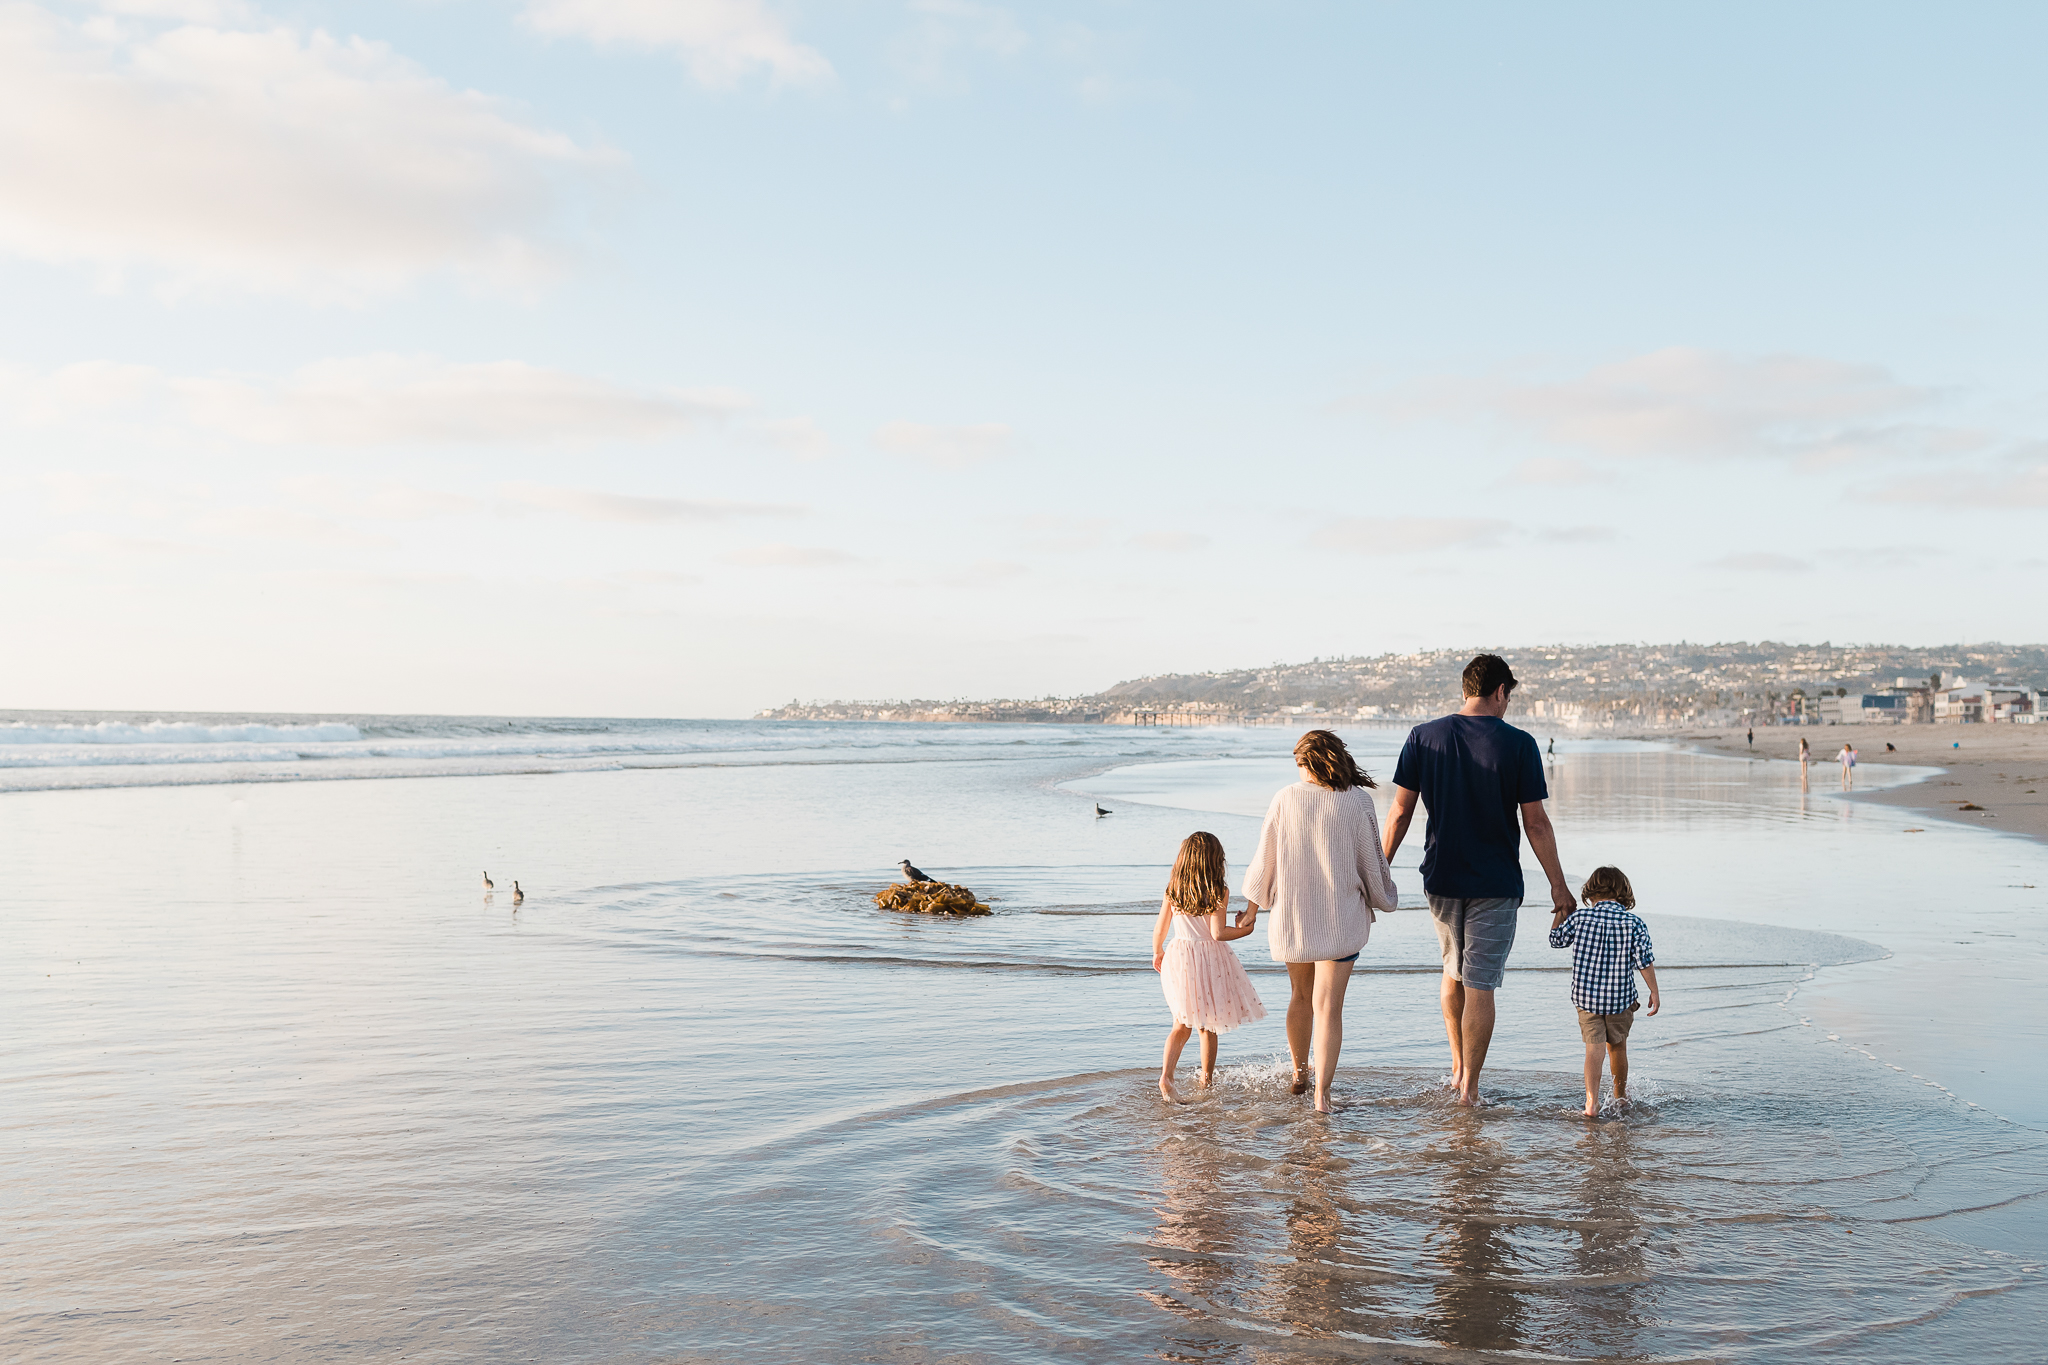 Family vacation in Mission Beach